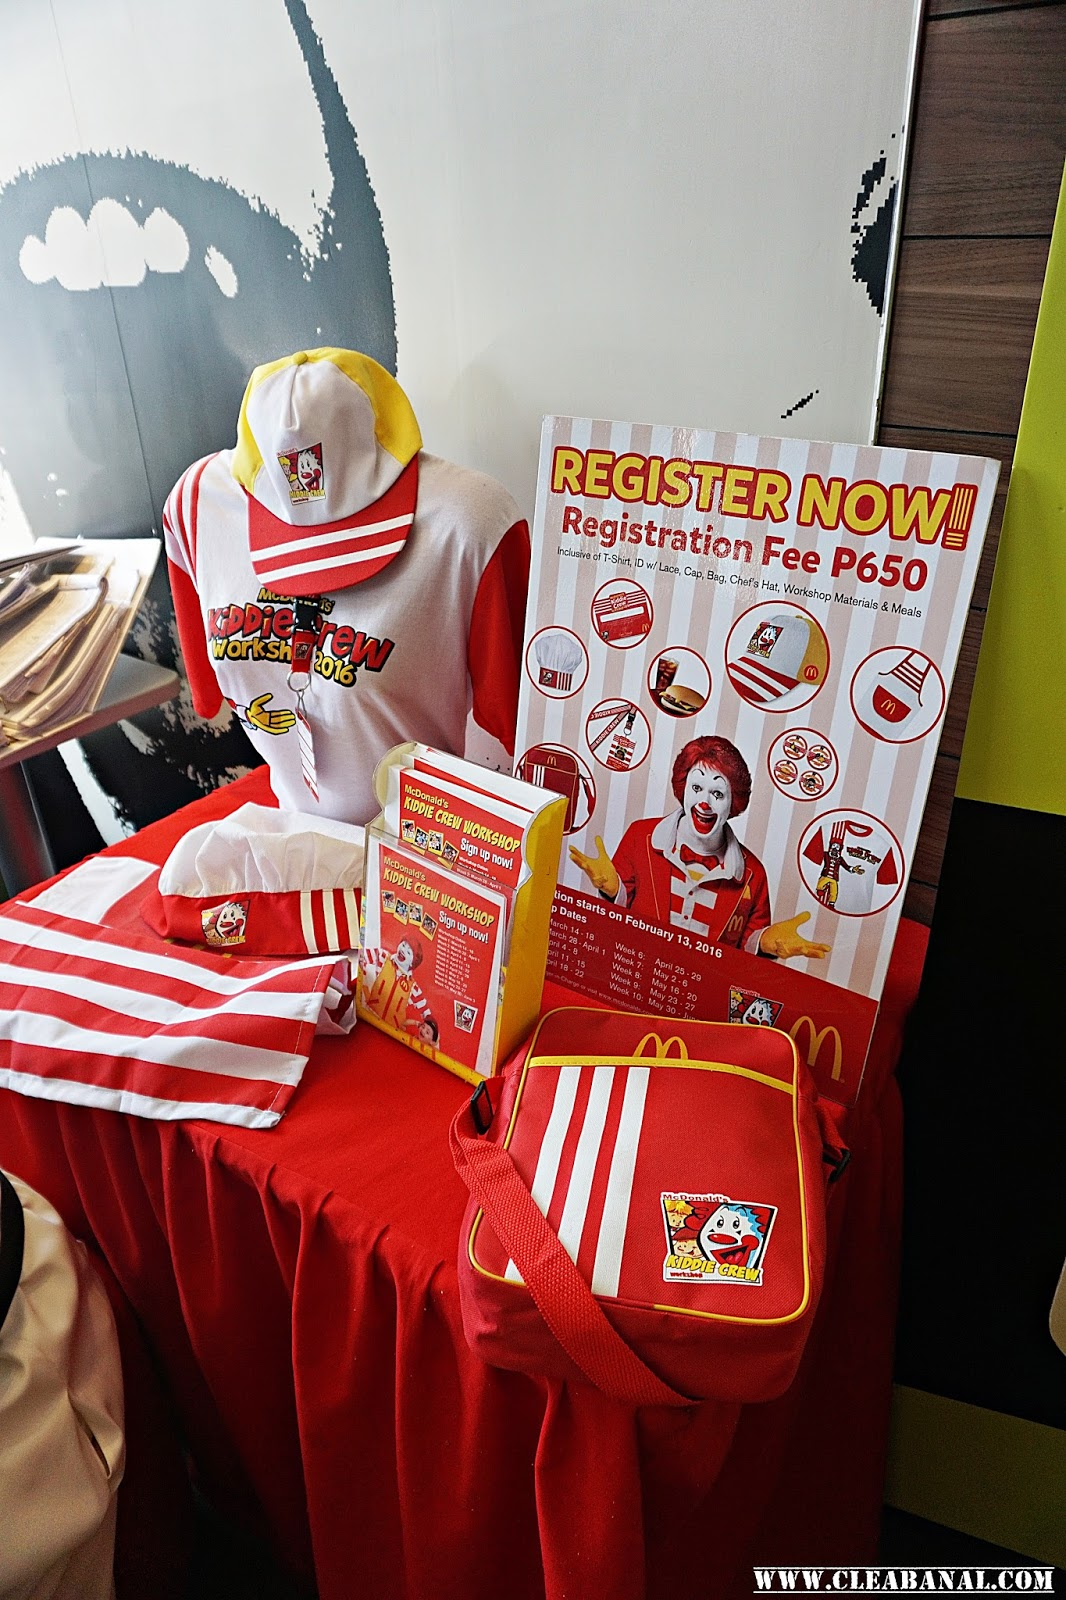 mcdonald s kiddie crew workshop 2016 clea banal for a fee of php650 kids 6 12 years of age get a workshop shirt cap bag i d workshop materials pin badge for every activity apron chef s hat